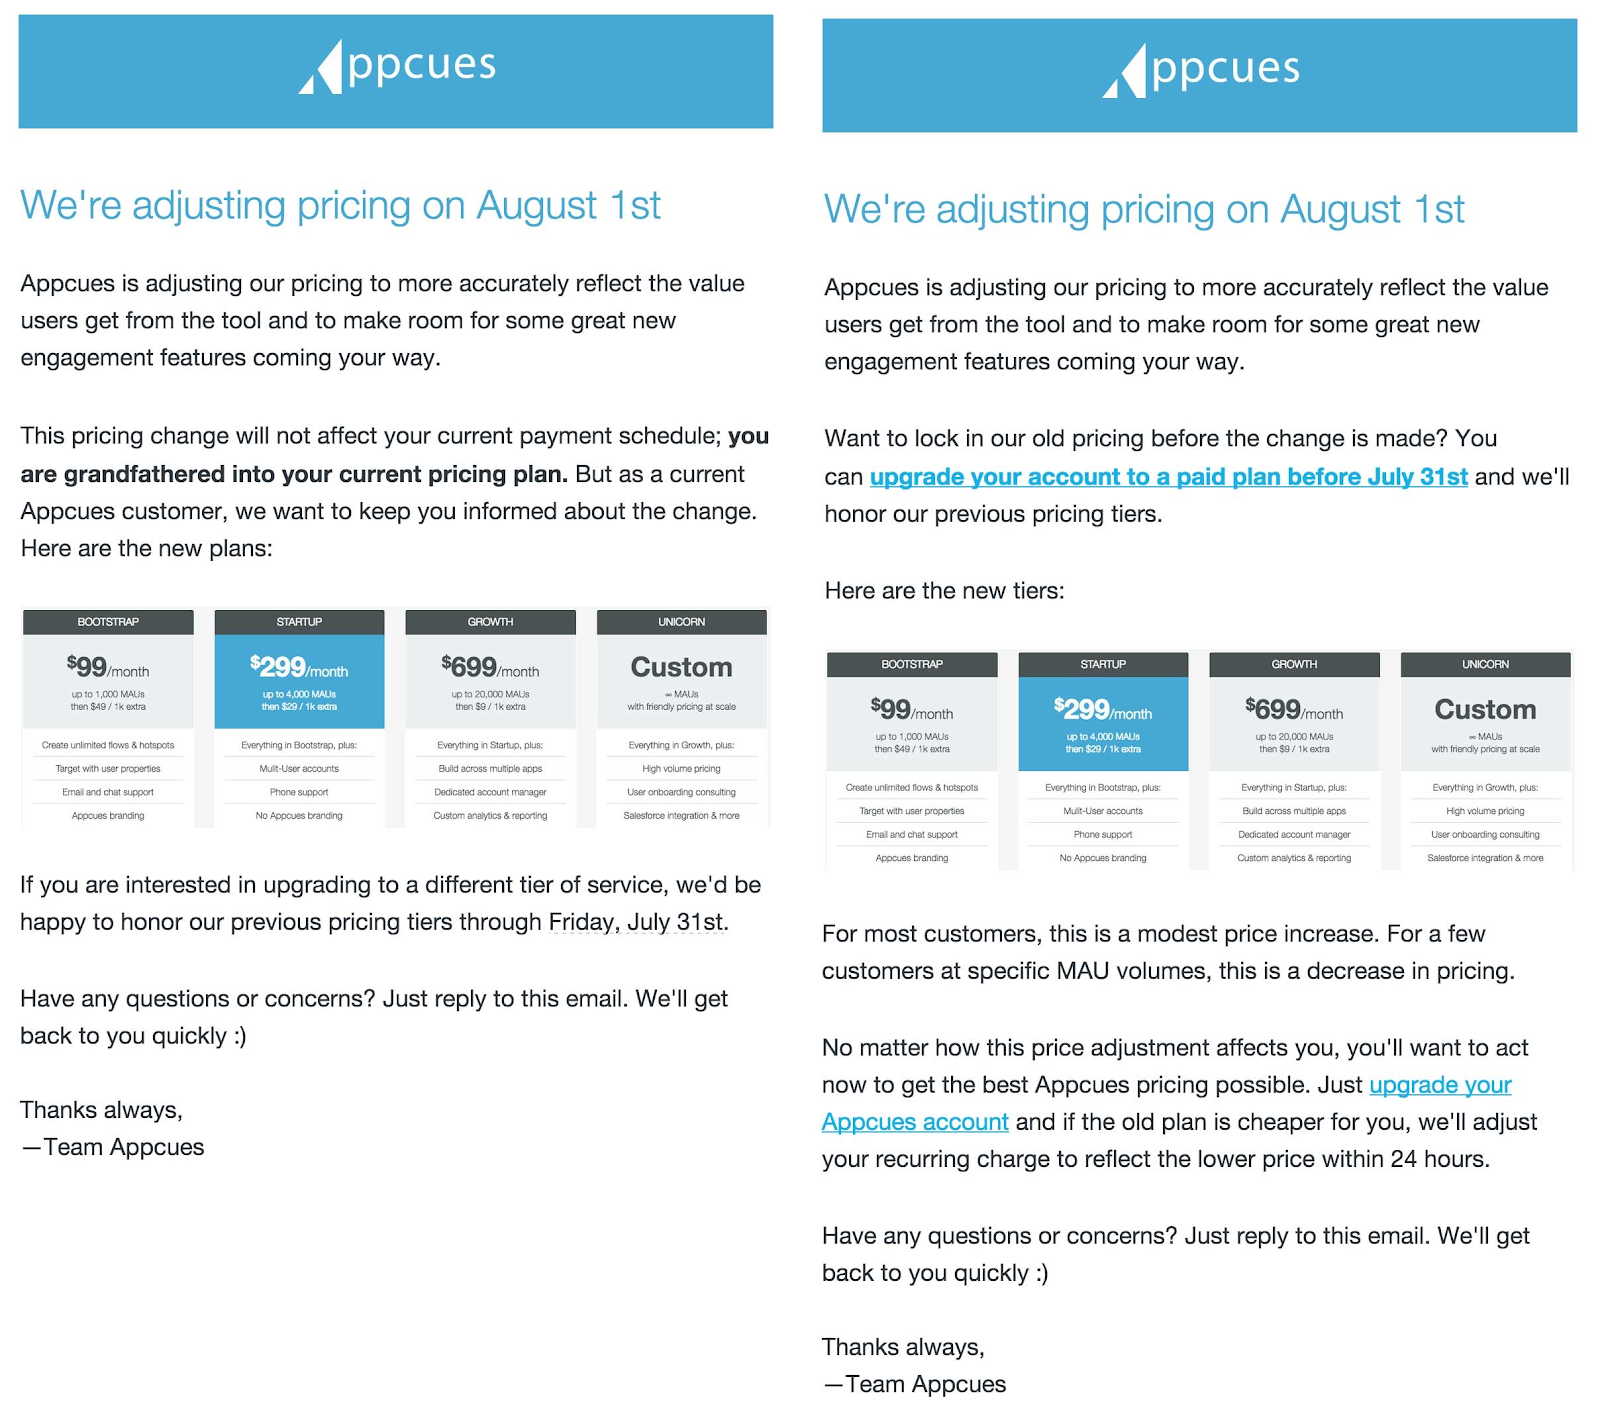 appcues emails sent to customers about price increases.